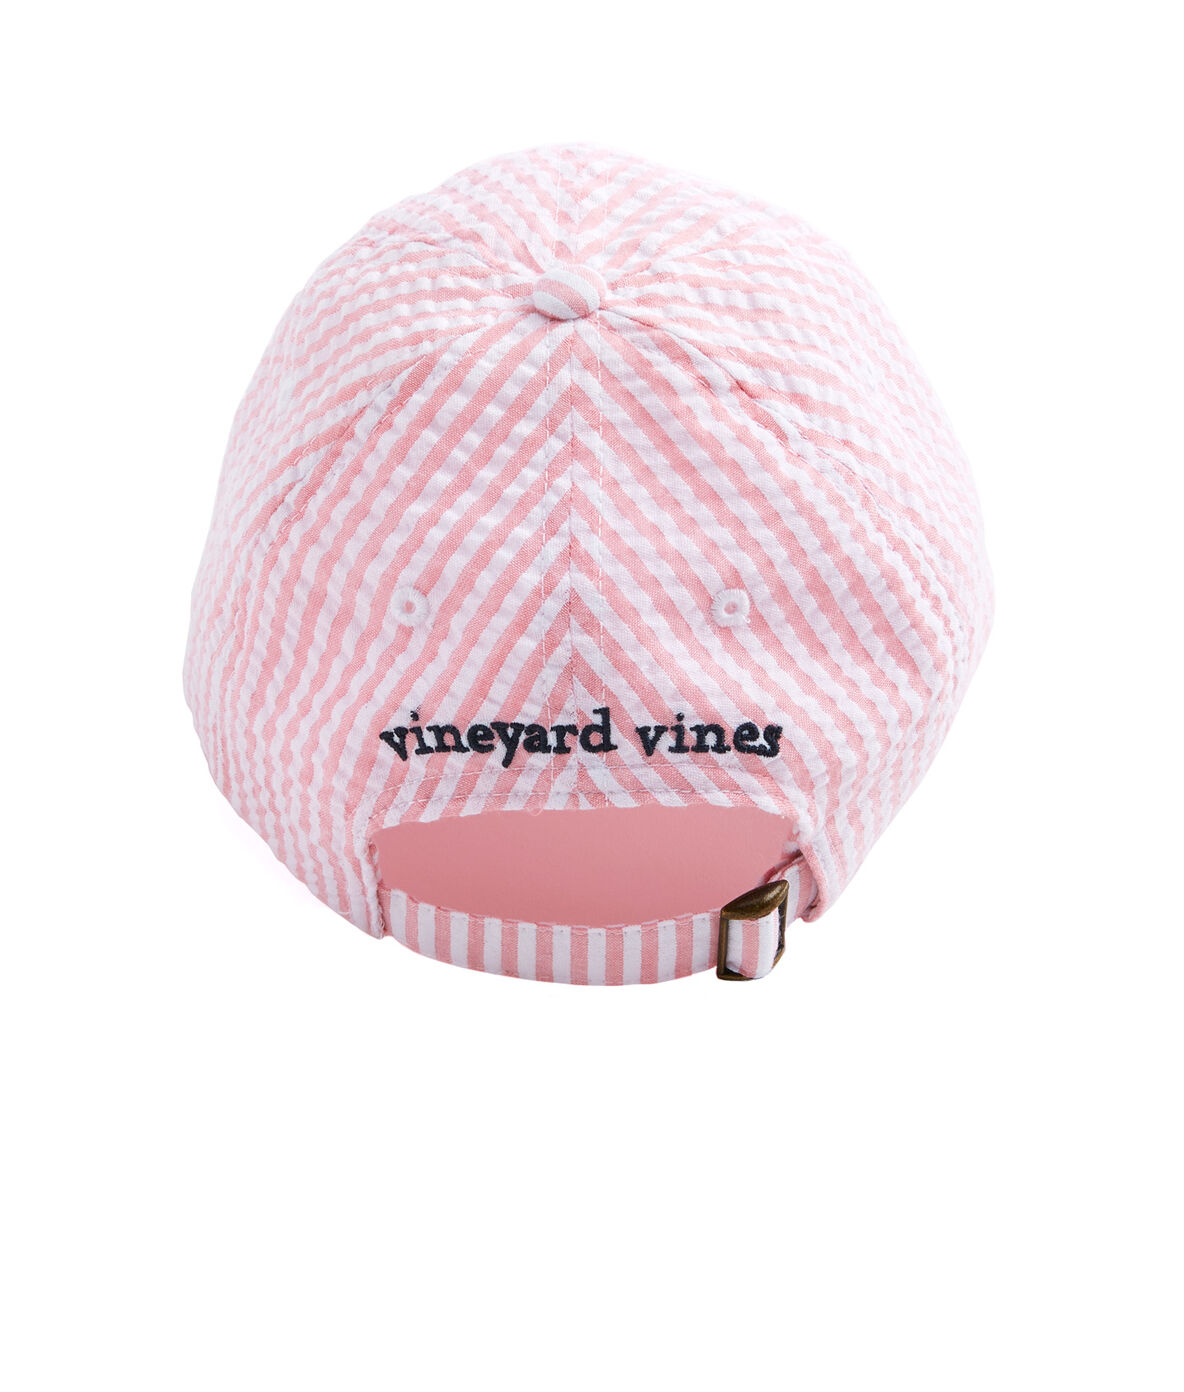 haircut at walmart light pink vineyard vines hat 28 images 1000 ideas 1579